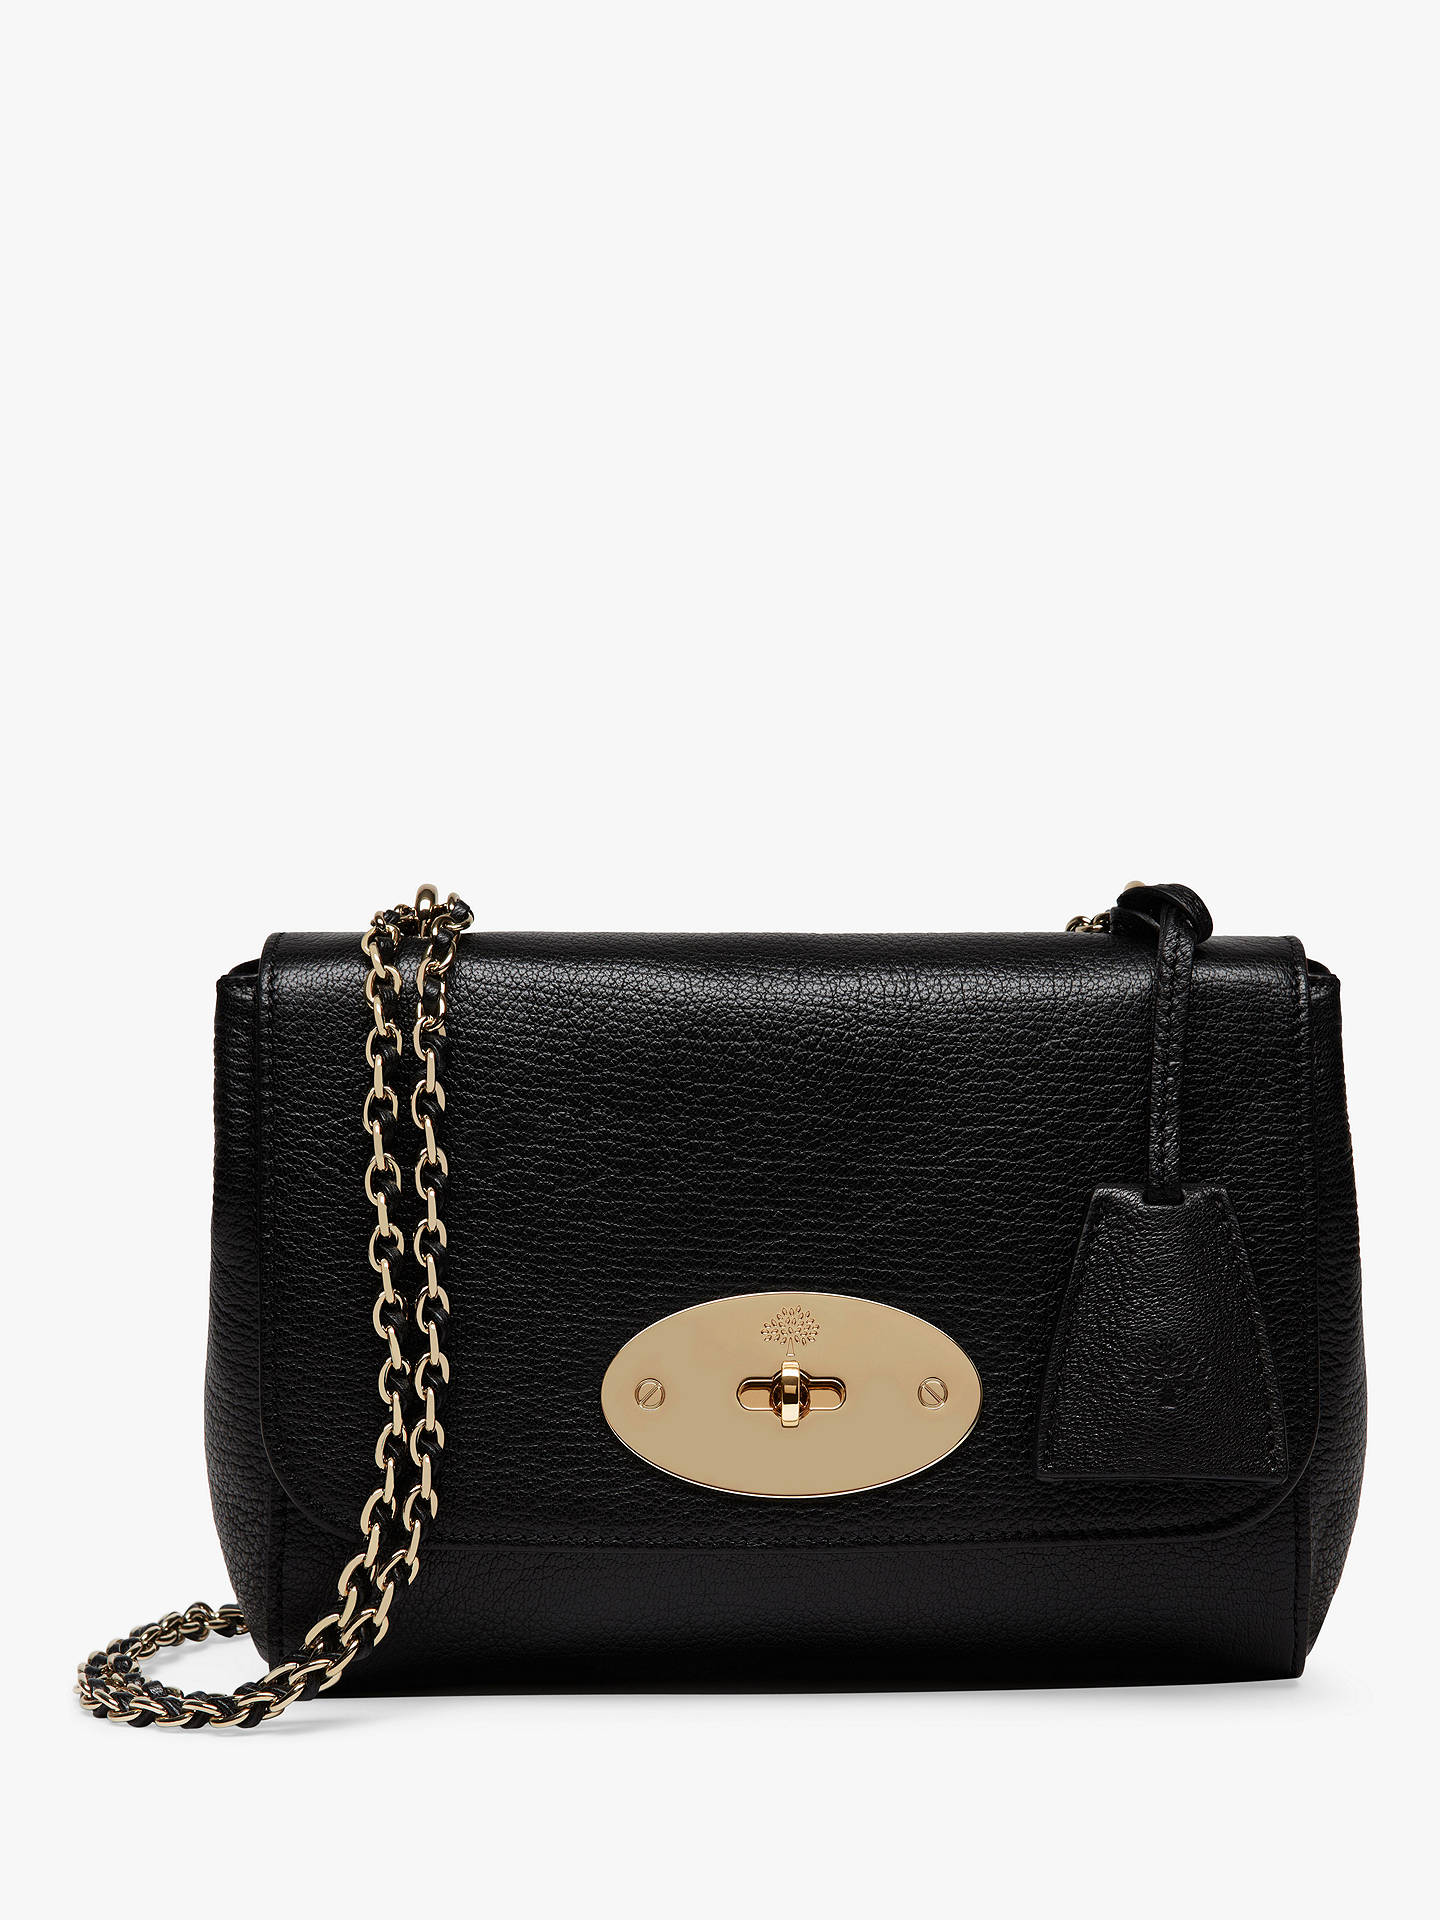 Mulberry Small Lily Glossy Goat Leather Shoulder Bag at John Lewis ... 3745aa7cefd68